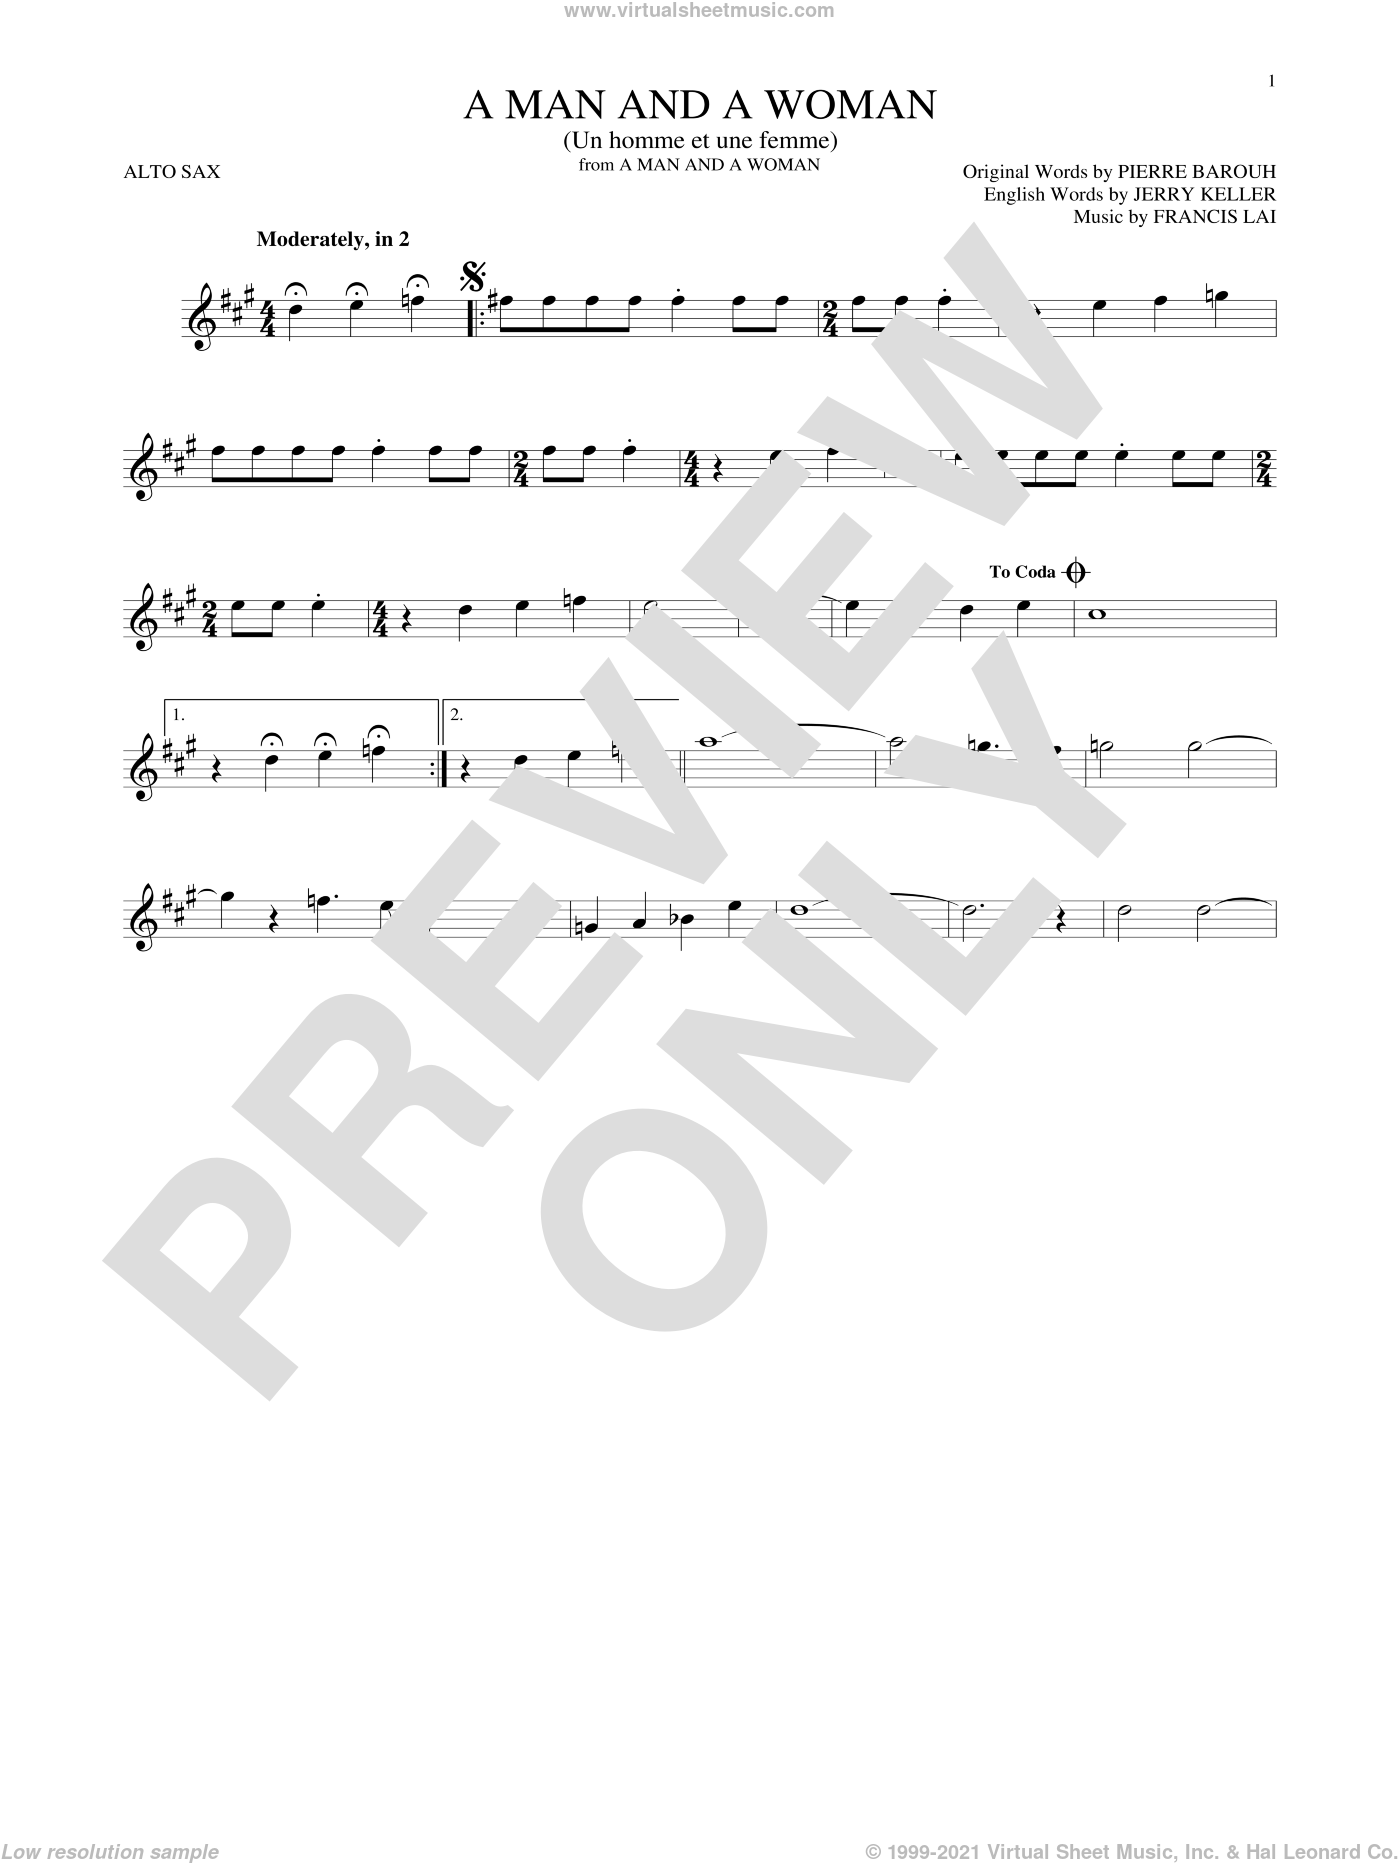 A Man And A Woman (Un Homme Et Une Femme) sheet music for alto saxophone solo ( Sax) by Pierre Barouh, Herbie Mann and Tamiko Jones, Francis Lai and Jerry Keller. Score Image Preview.